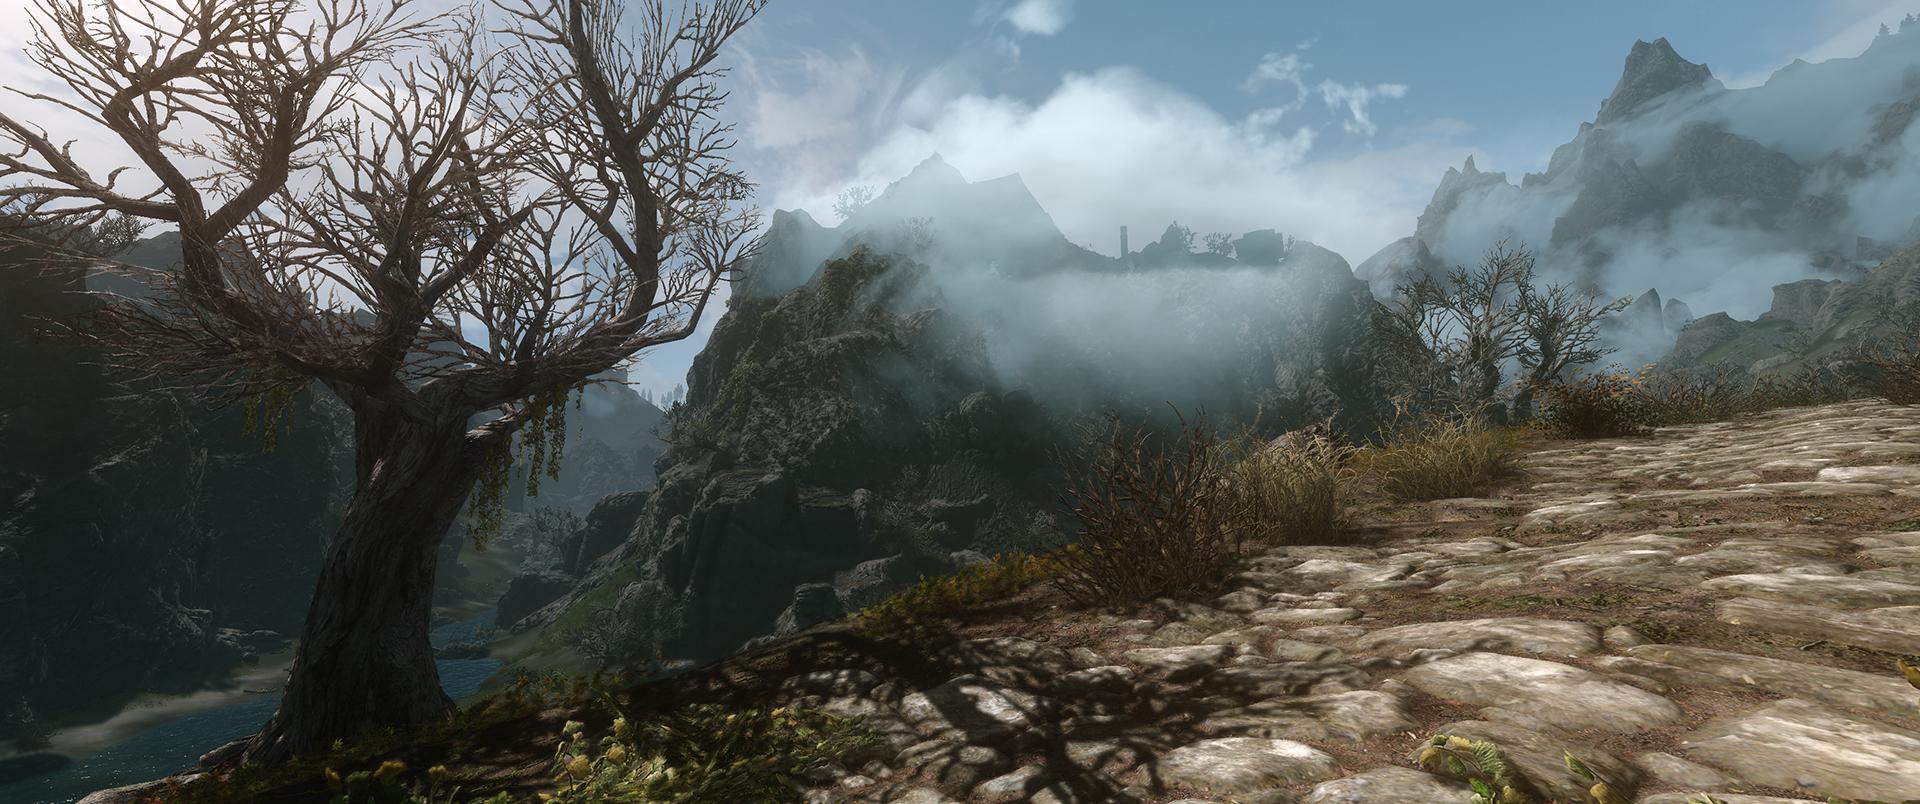 The Elder Scrolls V: Skyrim Mod Discussion and News [Creation Kit